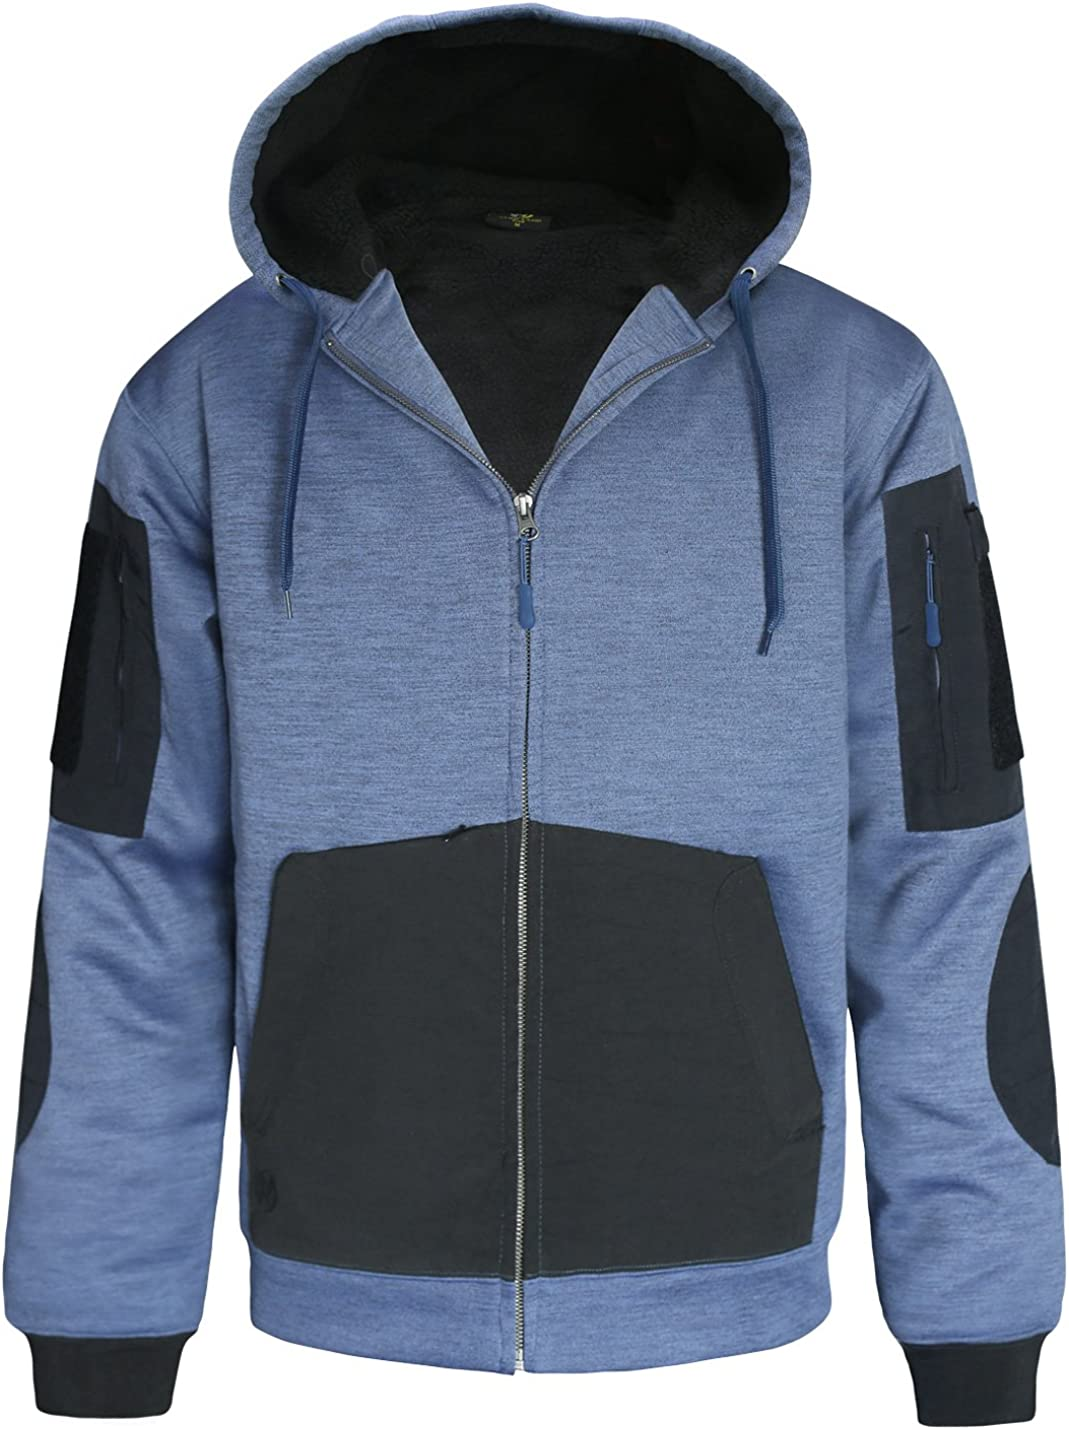 HARD LAND Men's Heavyweight Sherpa Lined Hoodie Zip Up Hooded Sweatshirt Winter Fleece Jacket